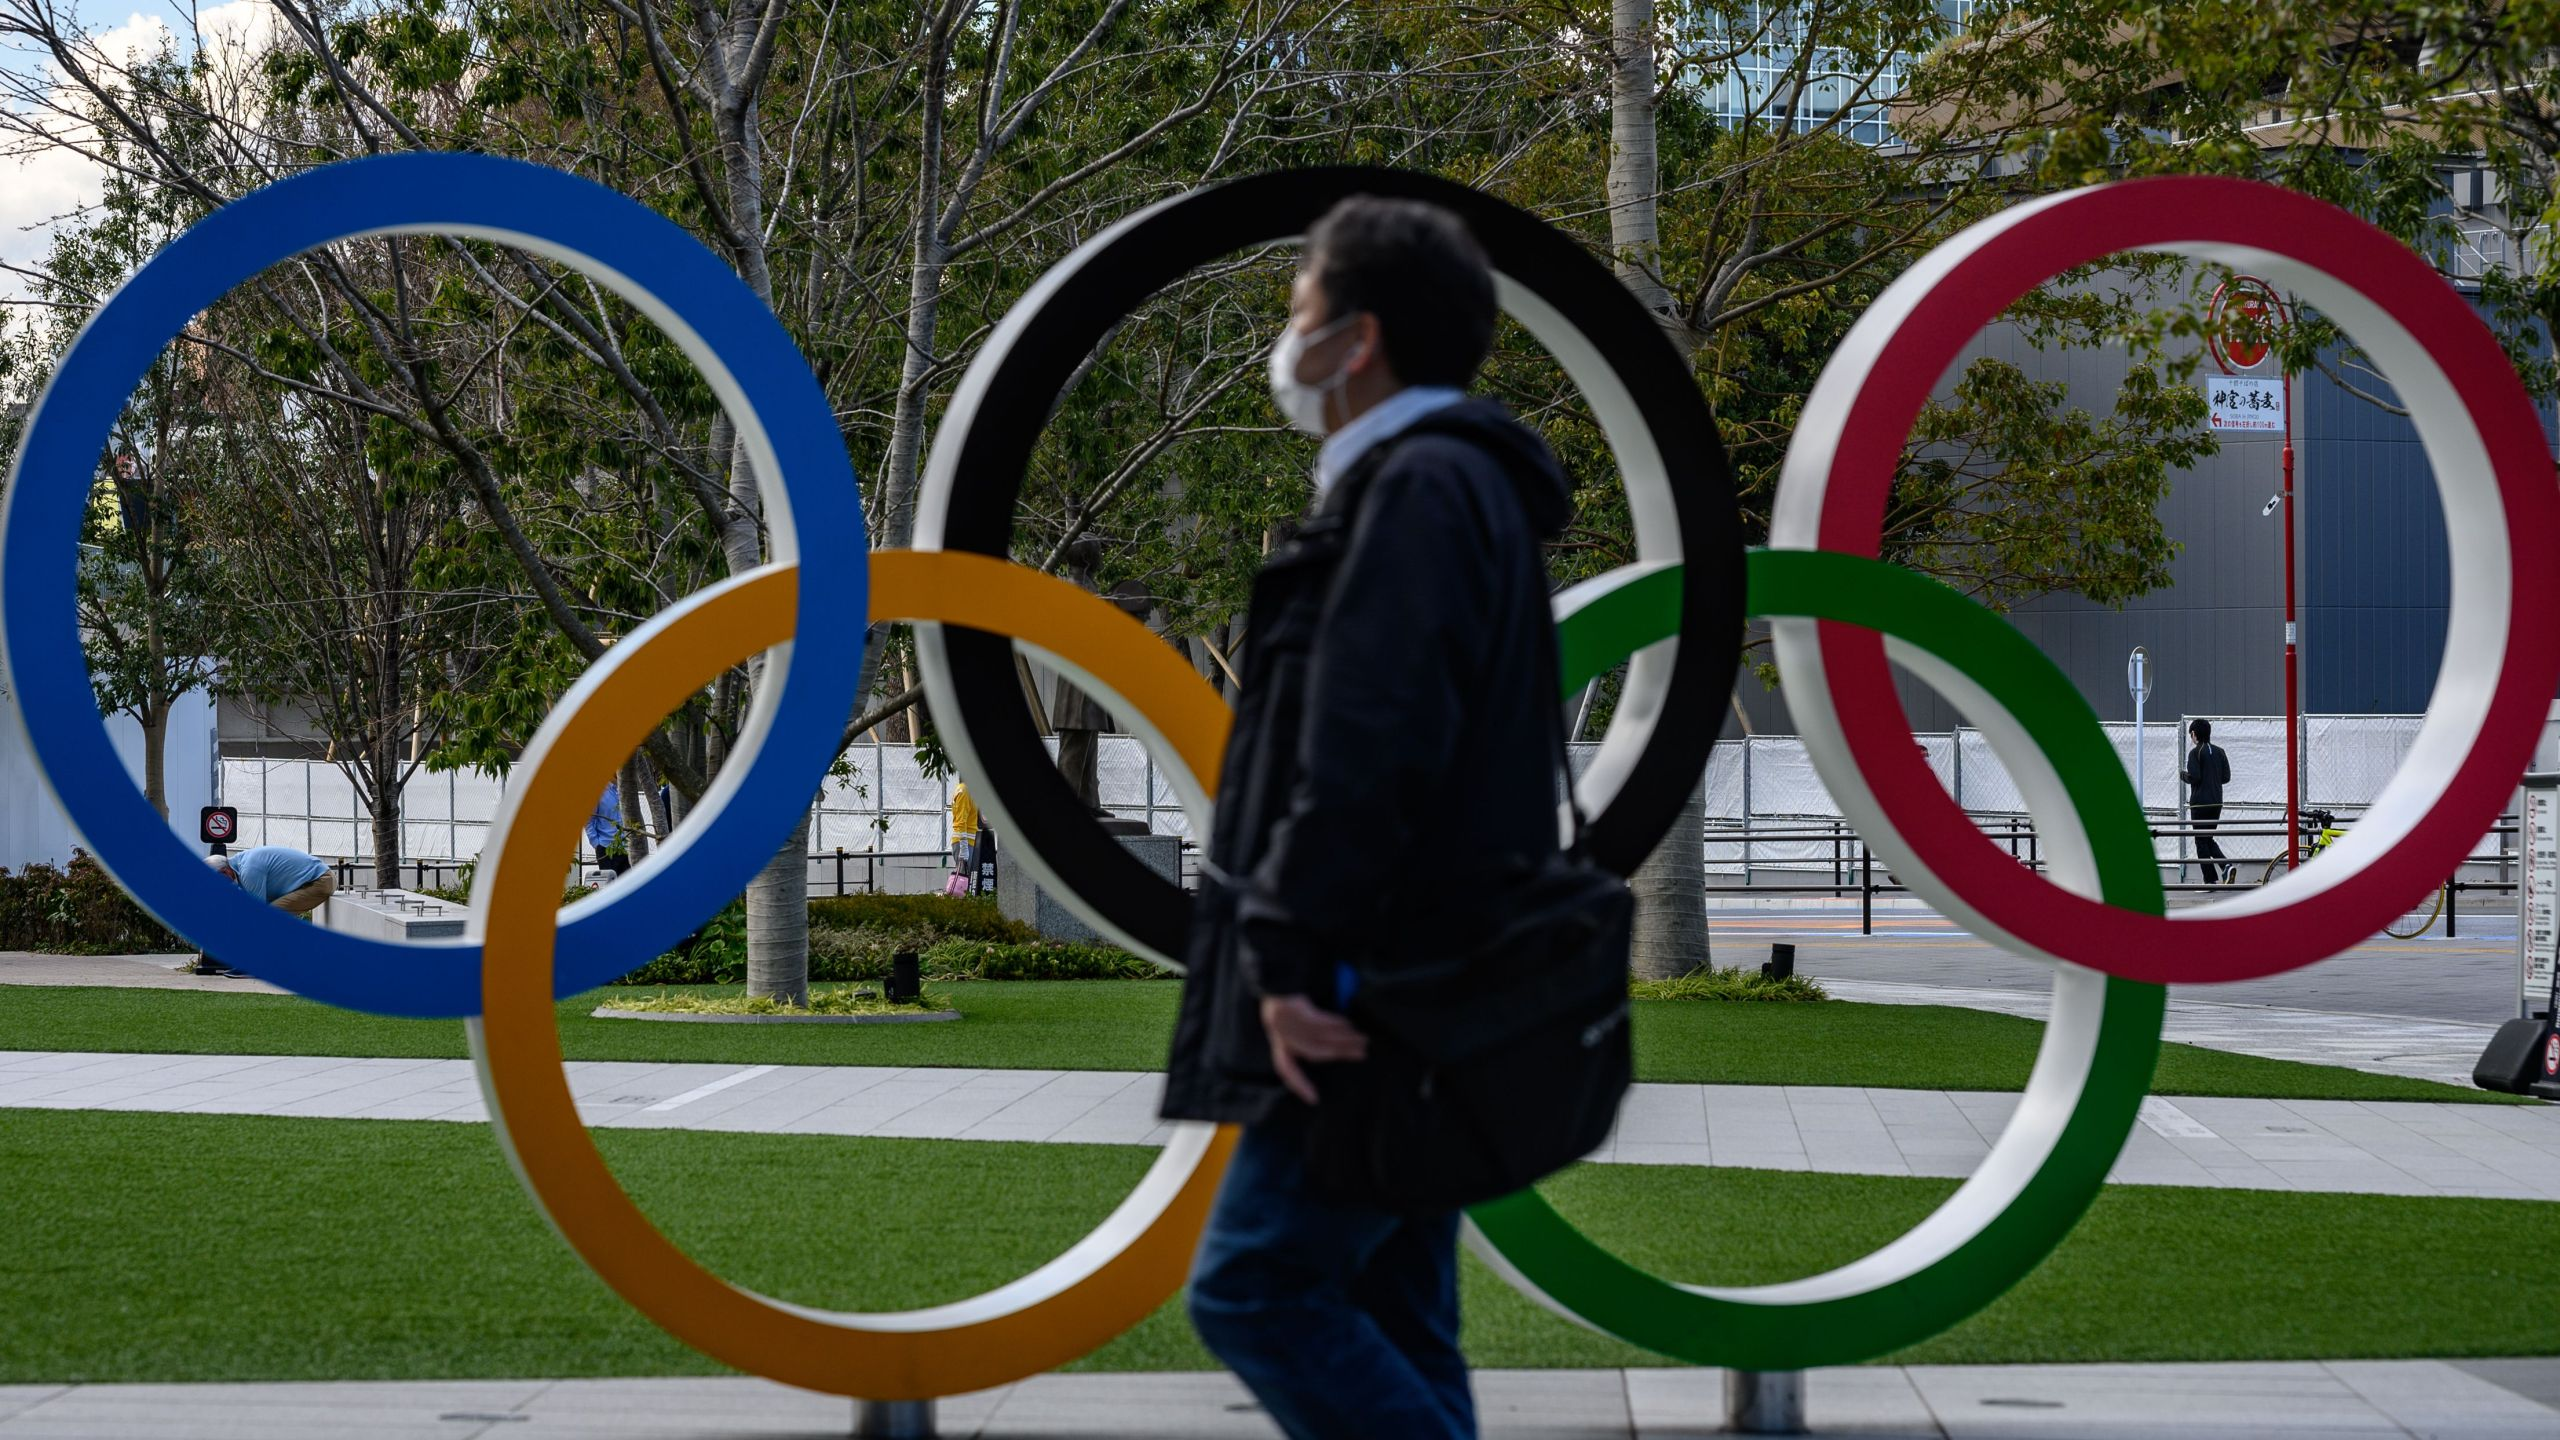 A man wearing a face mask walks in front of the Olympic Rings in Tokyo on March 11, 2020. (Philip Fong/AFP via Getty Images)